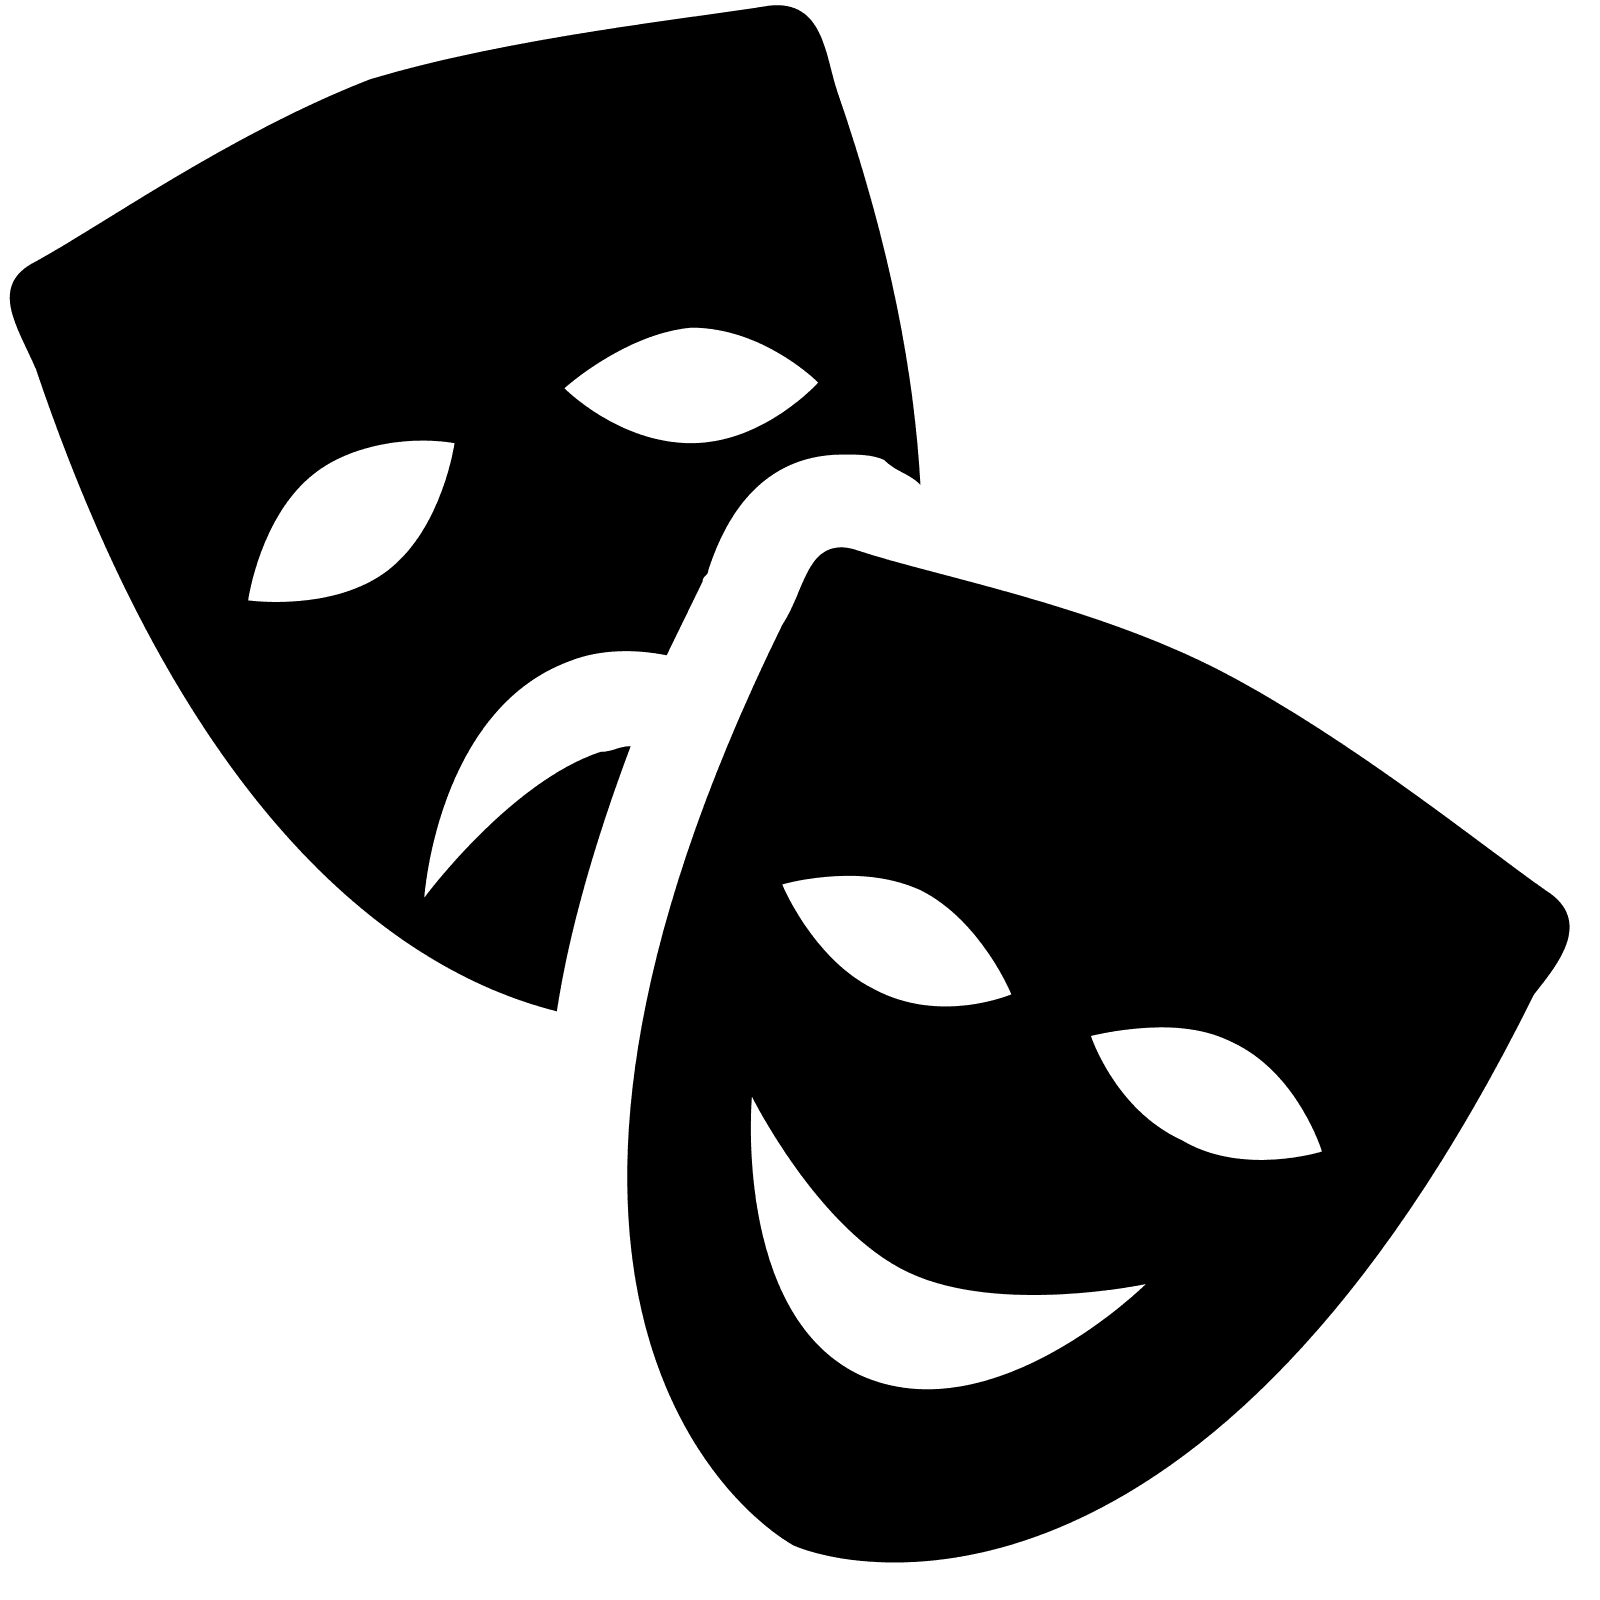 Theatre vector transparent. Png images pluspng theatrepluspngcom